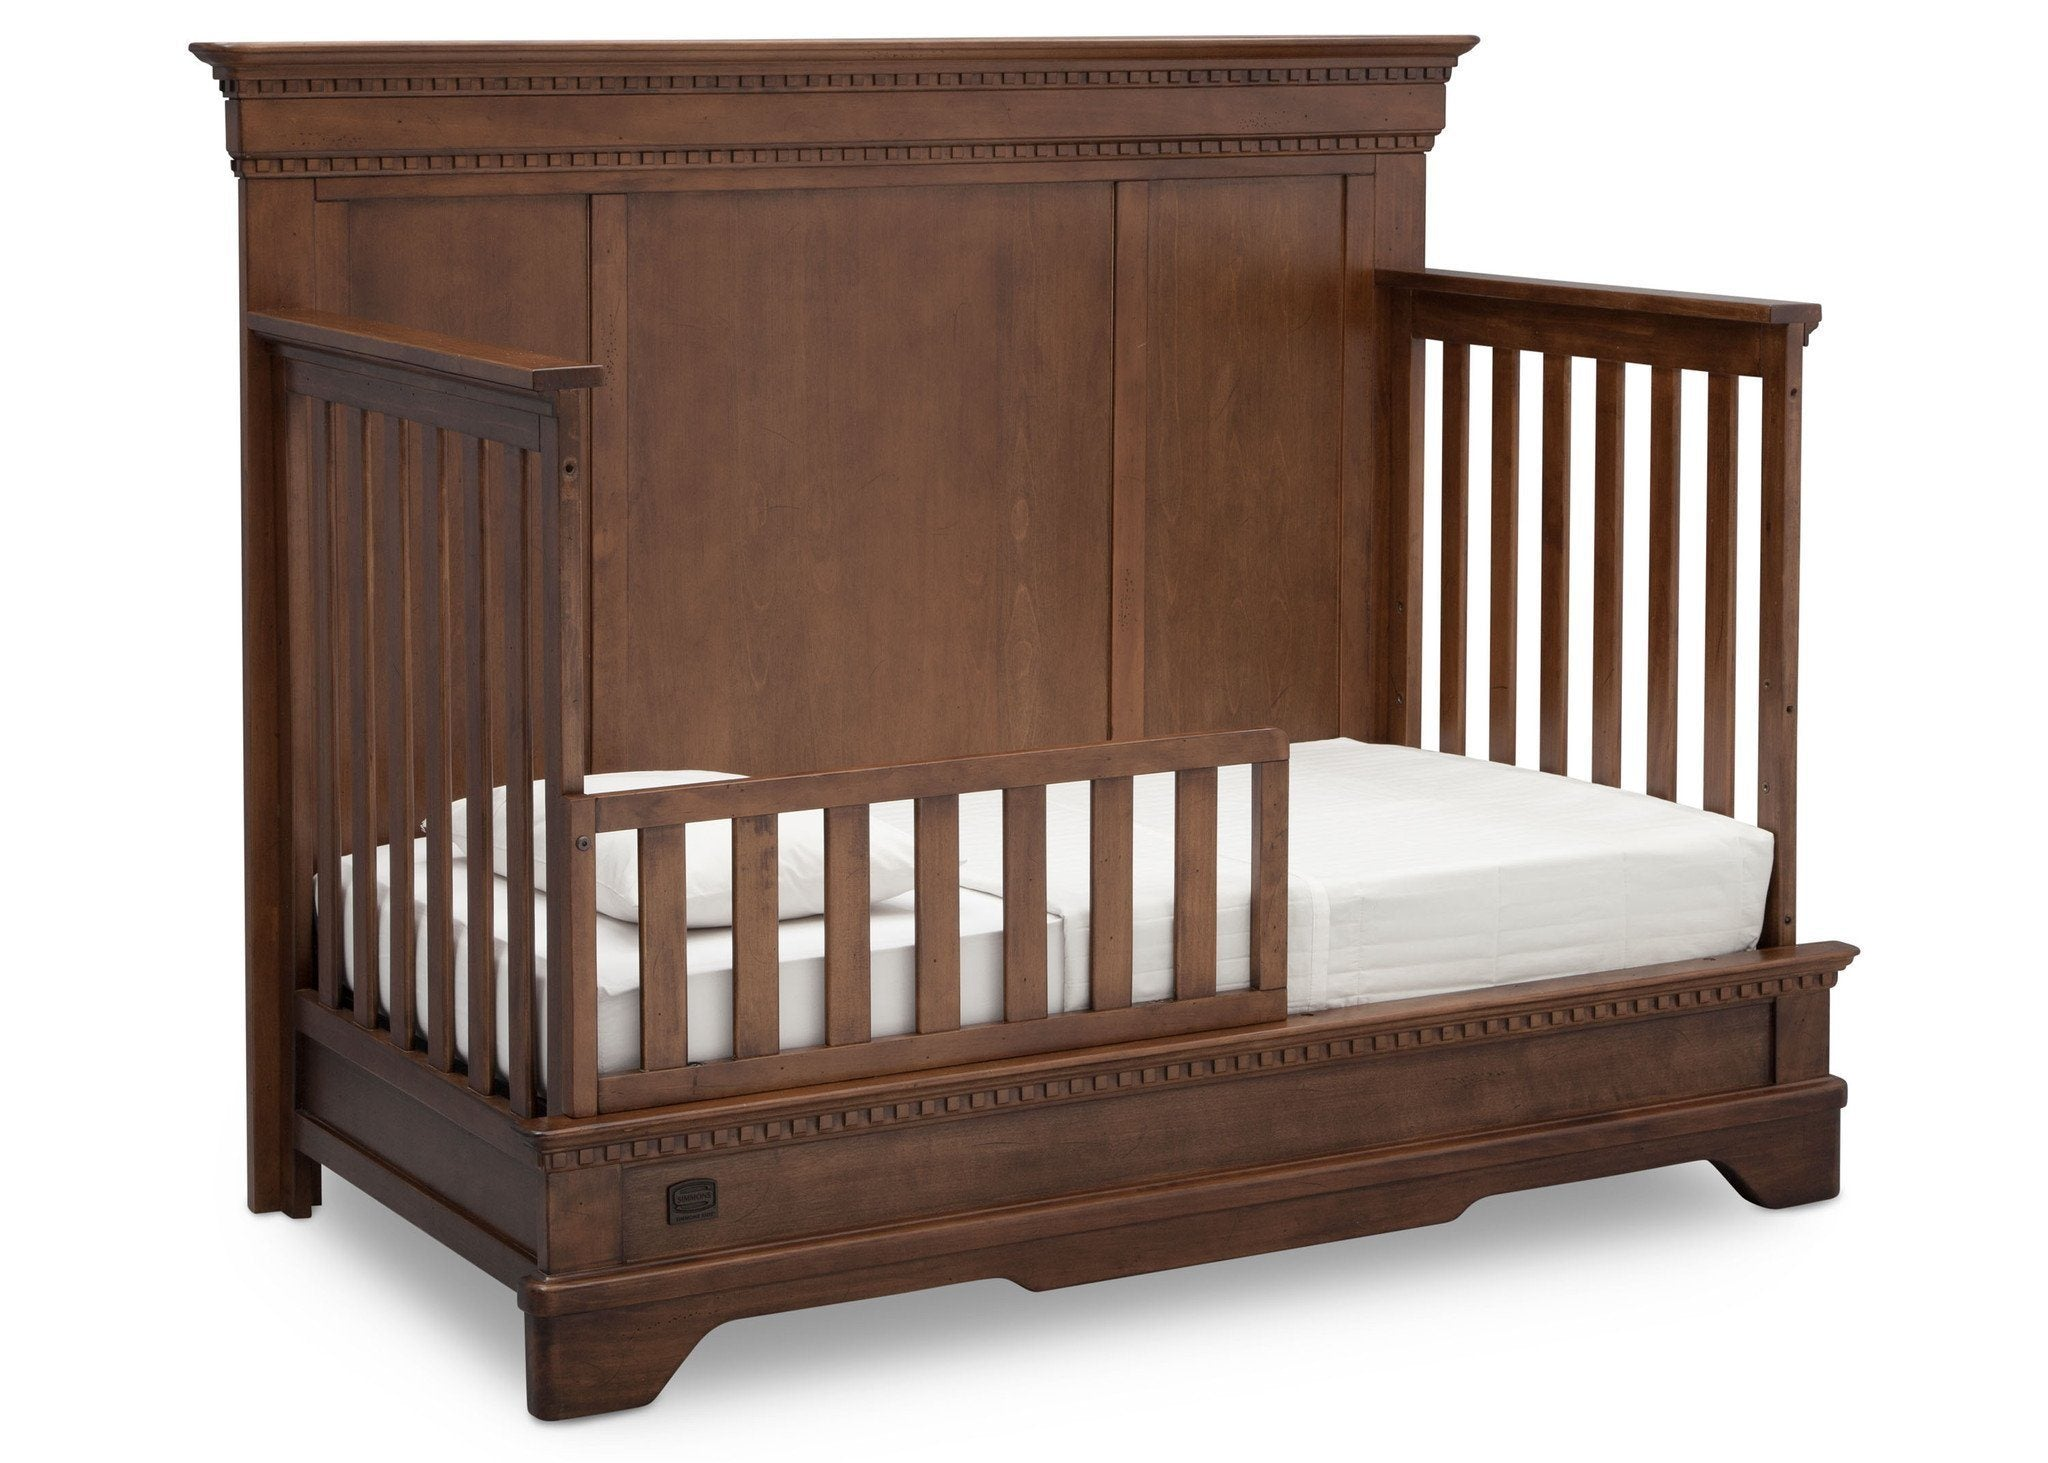 Simmons Kids Antique Chestnut (2100) Tivoli Crib 'N' More, Angled Conversion to Toddler Bed View, a4a